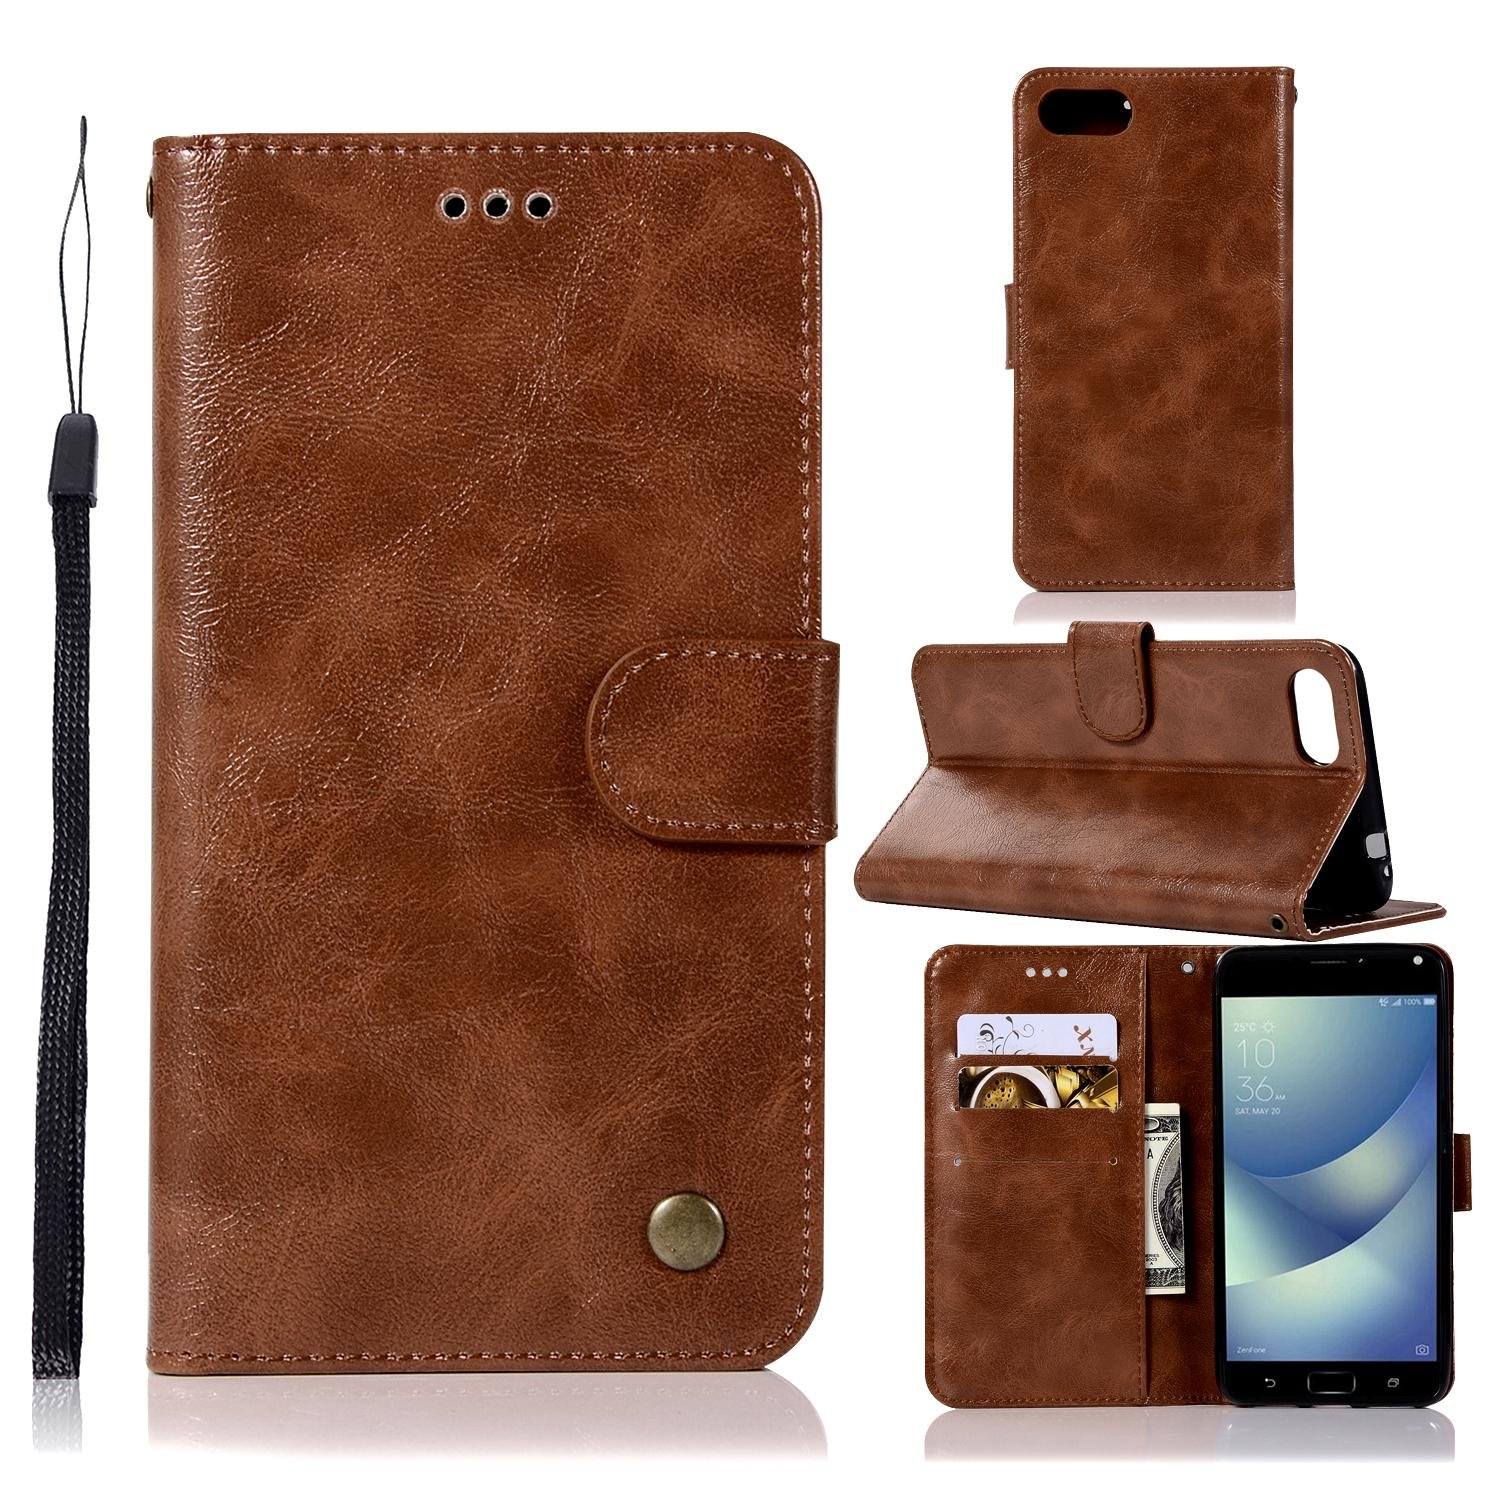 Casing For Asus Zenfone 4 Max Zc520kl,reto Leather Wallet Case Magnetic Double Card Holder Flip Cover By Life Goes On.